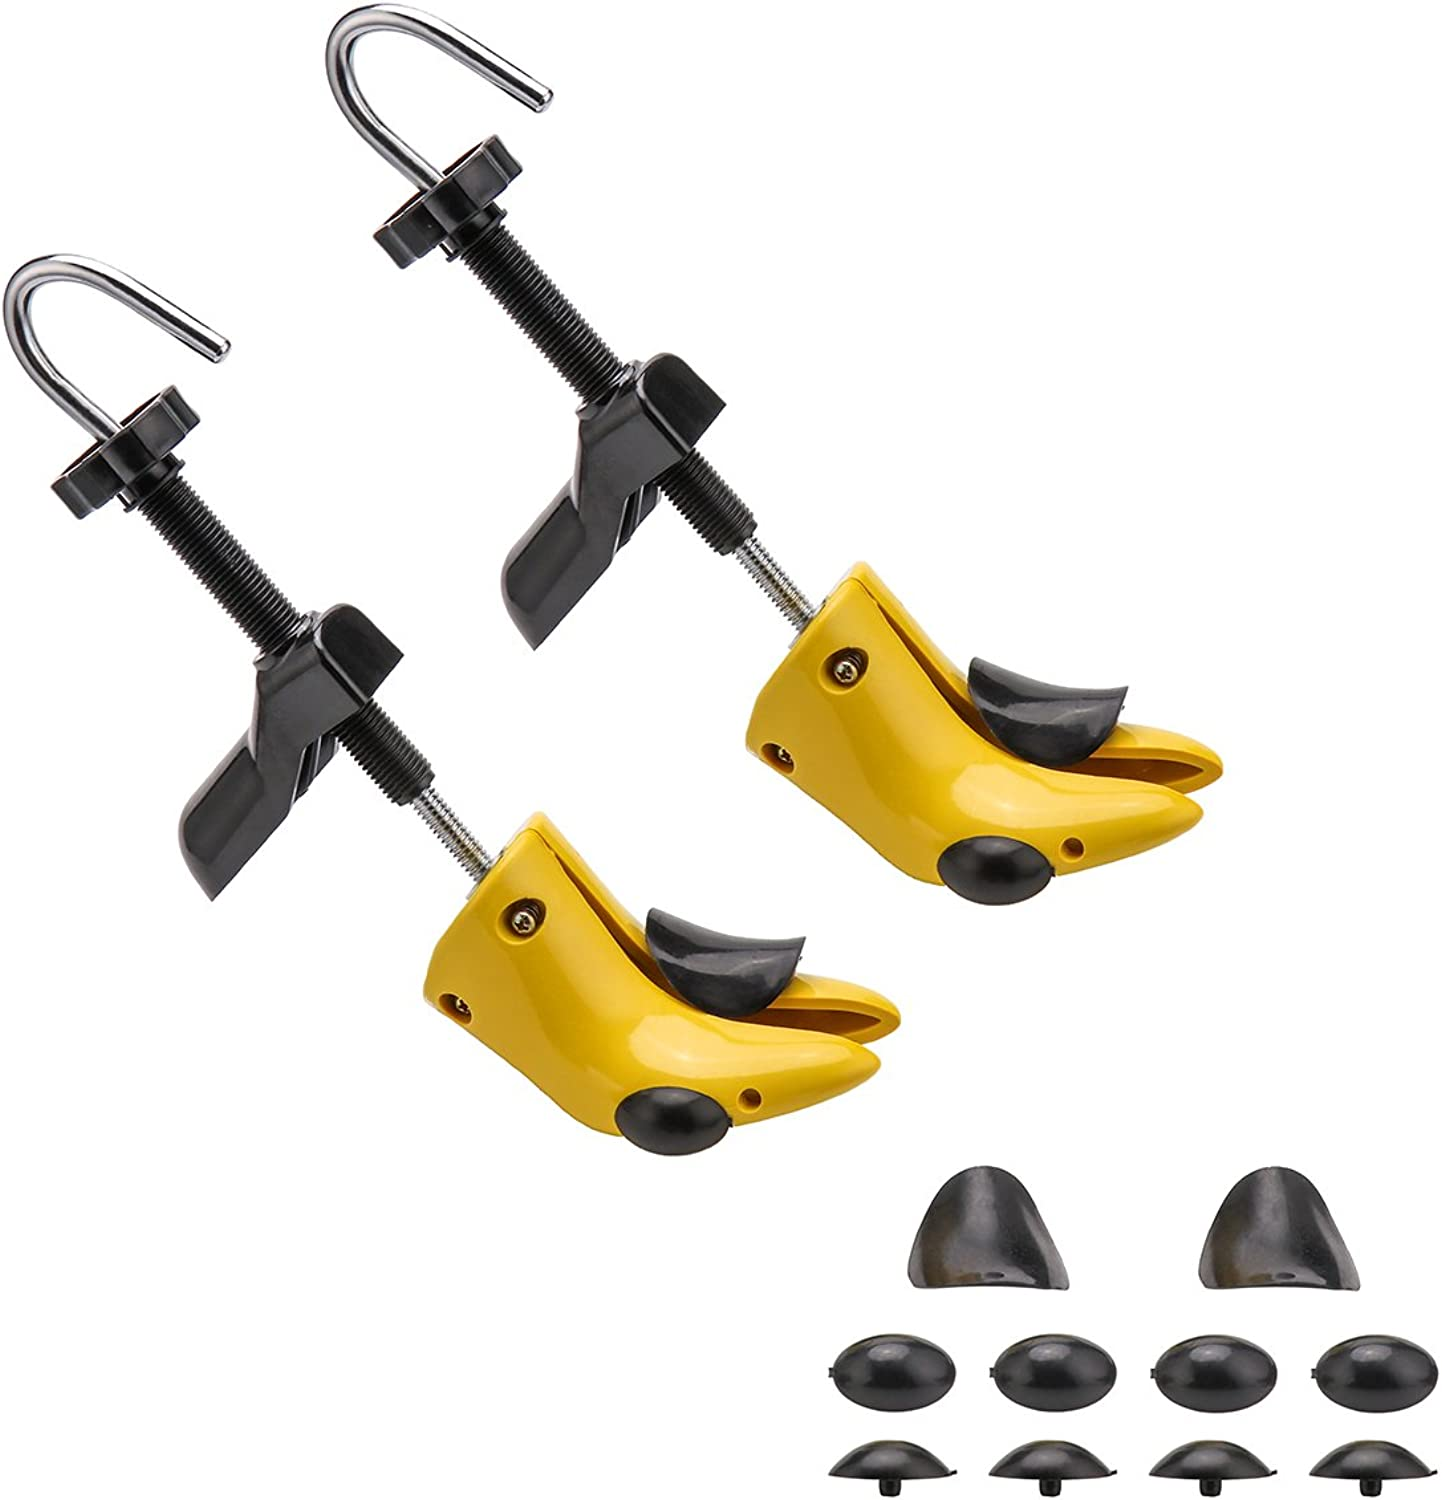 shoes Stretcher with Carrying Bag Pair of Premium Two-Way Tough Plastic shoes Stretchers Adjustable Length and Width Unisex for Men and Women